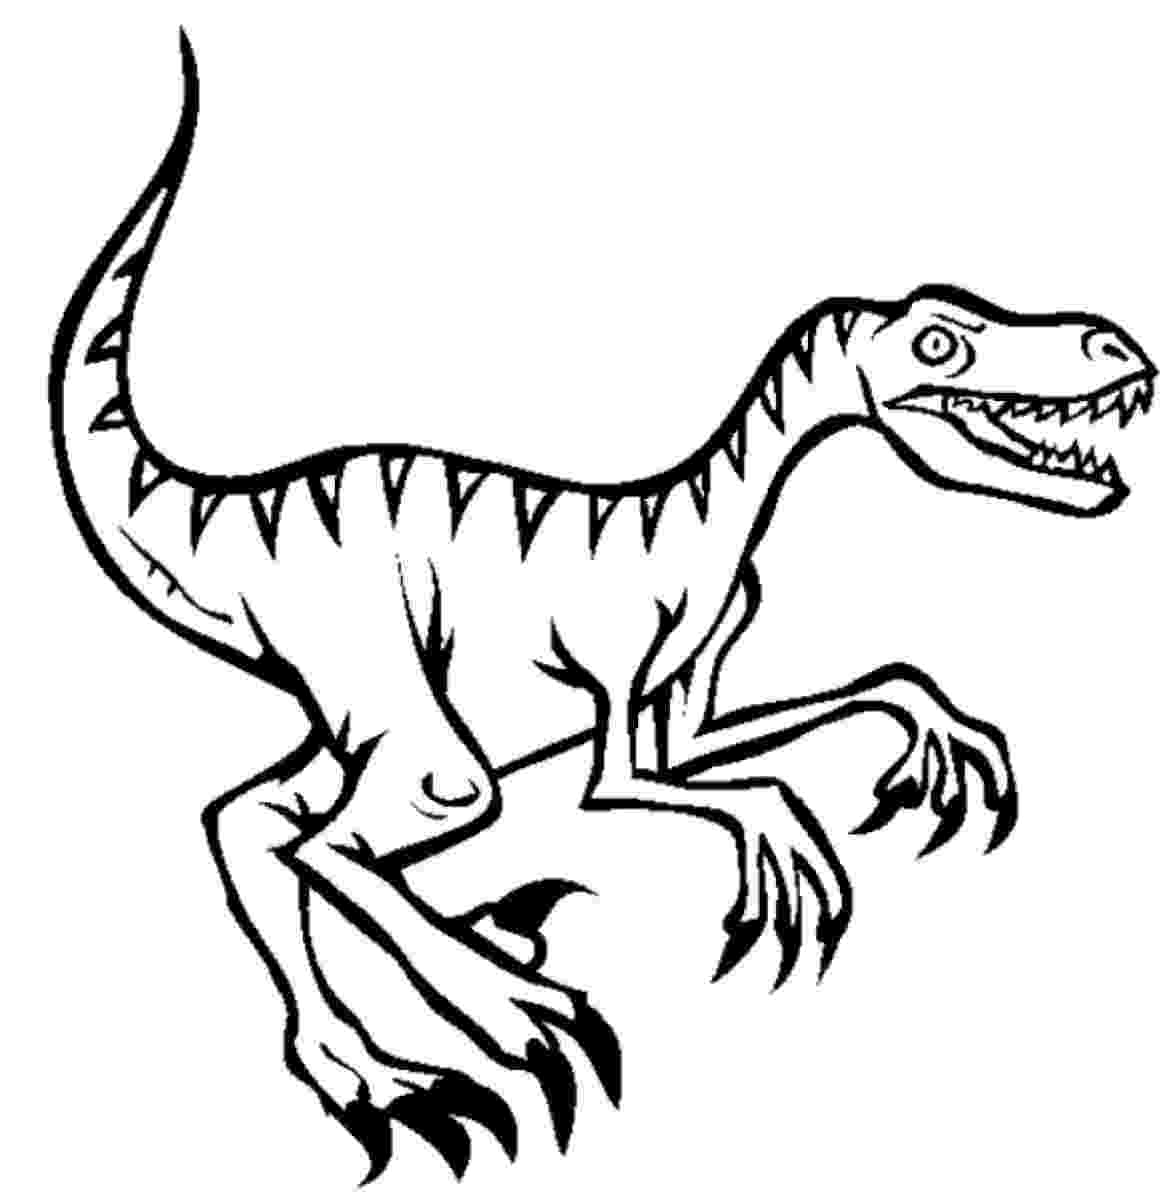 colouring pages velociraptor raptor coloring pages download and print for free pages colouring velociraptor